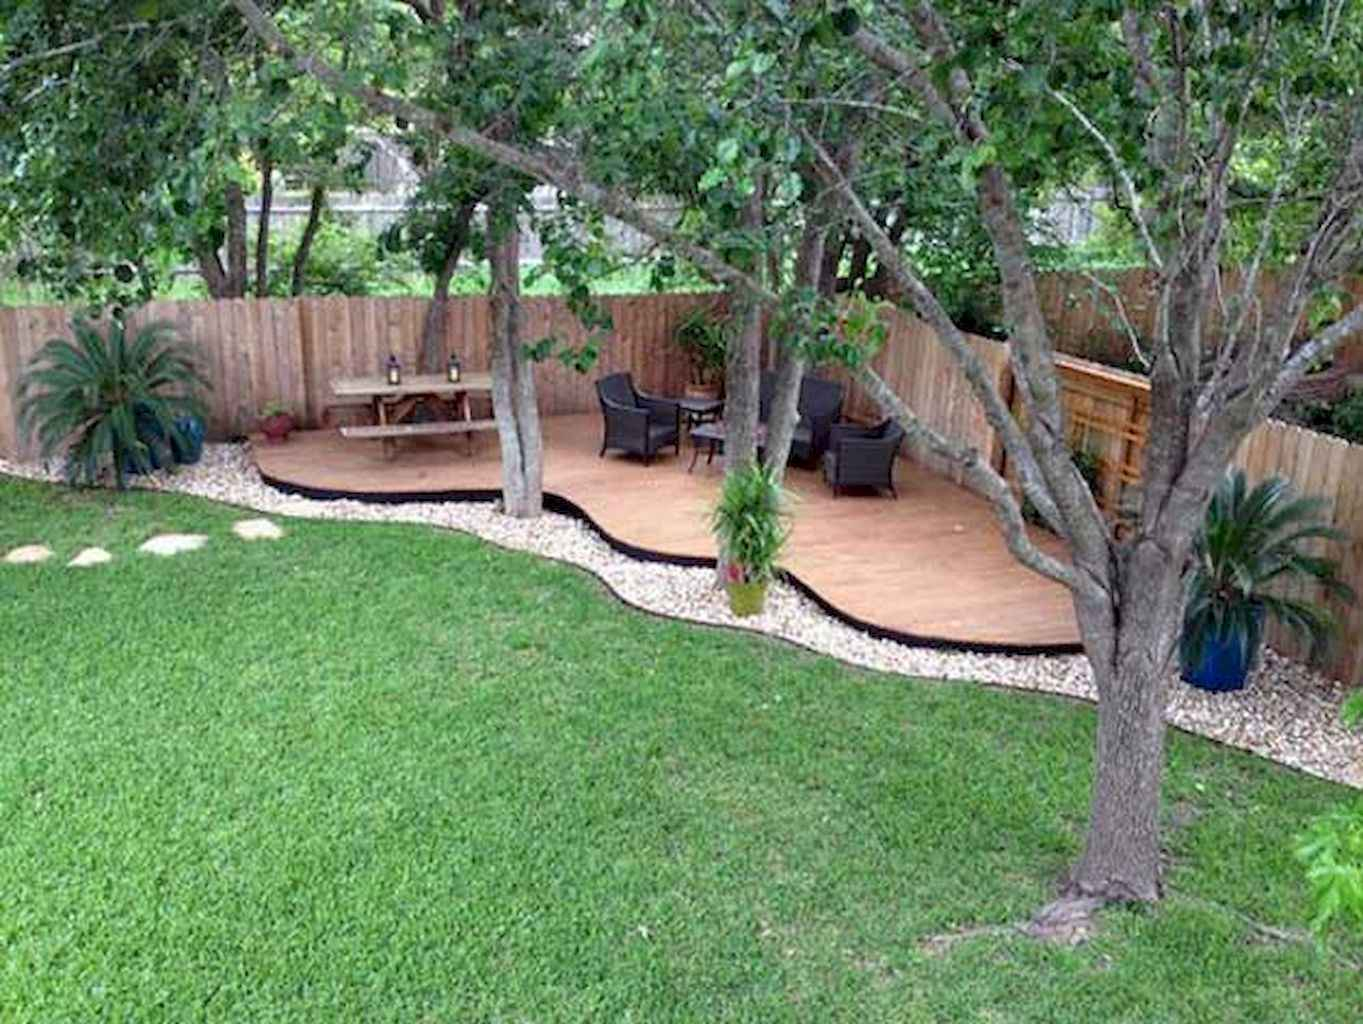 60 Fresh Backyard Landscaping Design Ideas On A Budget Coachdecor with regard to Landscaped Backyards